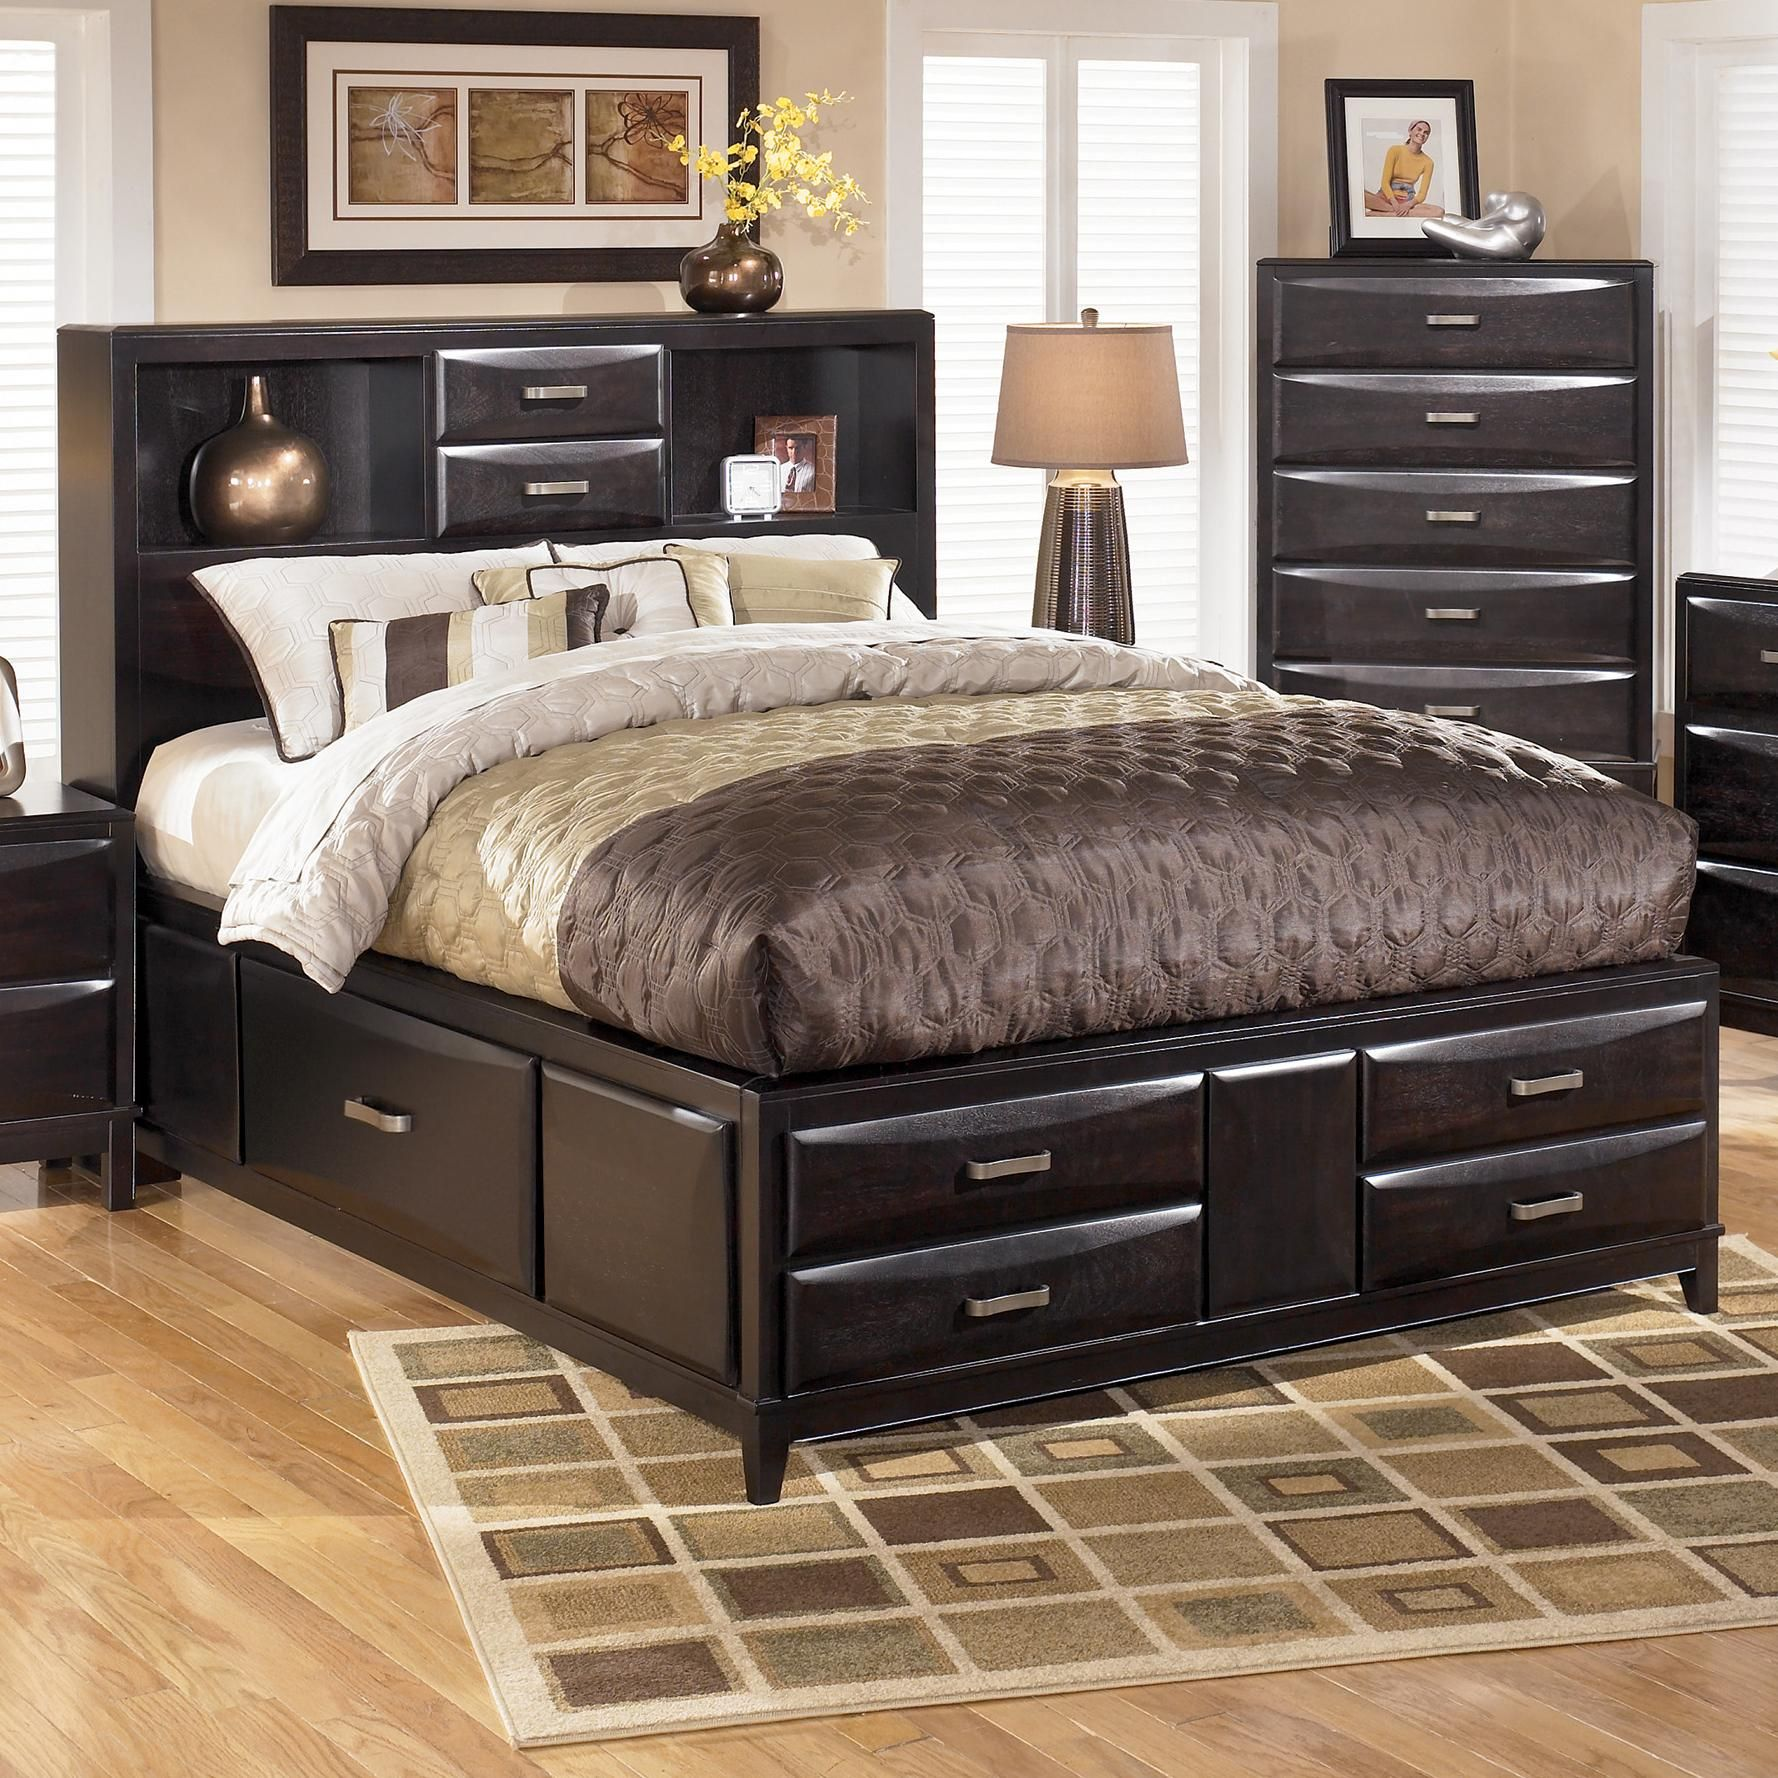 Kira King Storage Bed By Ashley Furniture Bedroom Furniture Sets King Storage Bed Bedroom Sets Queen